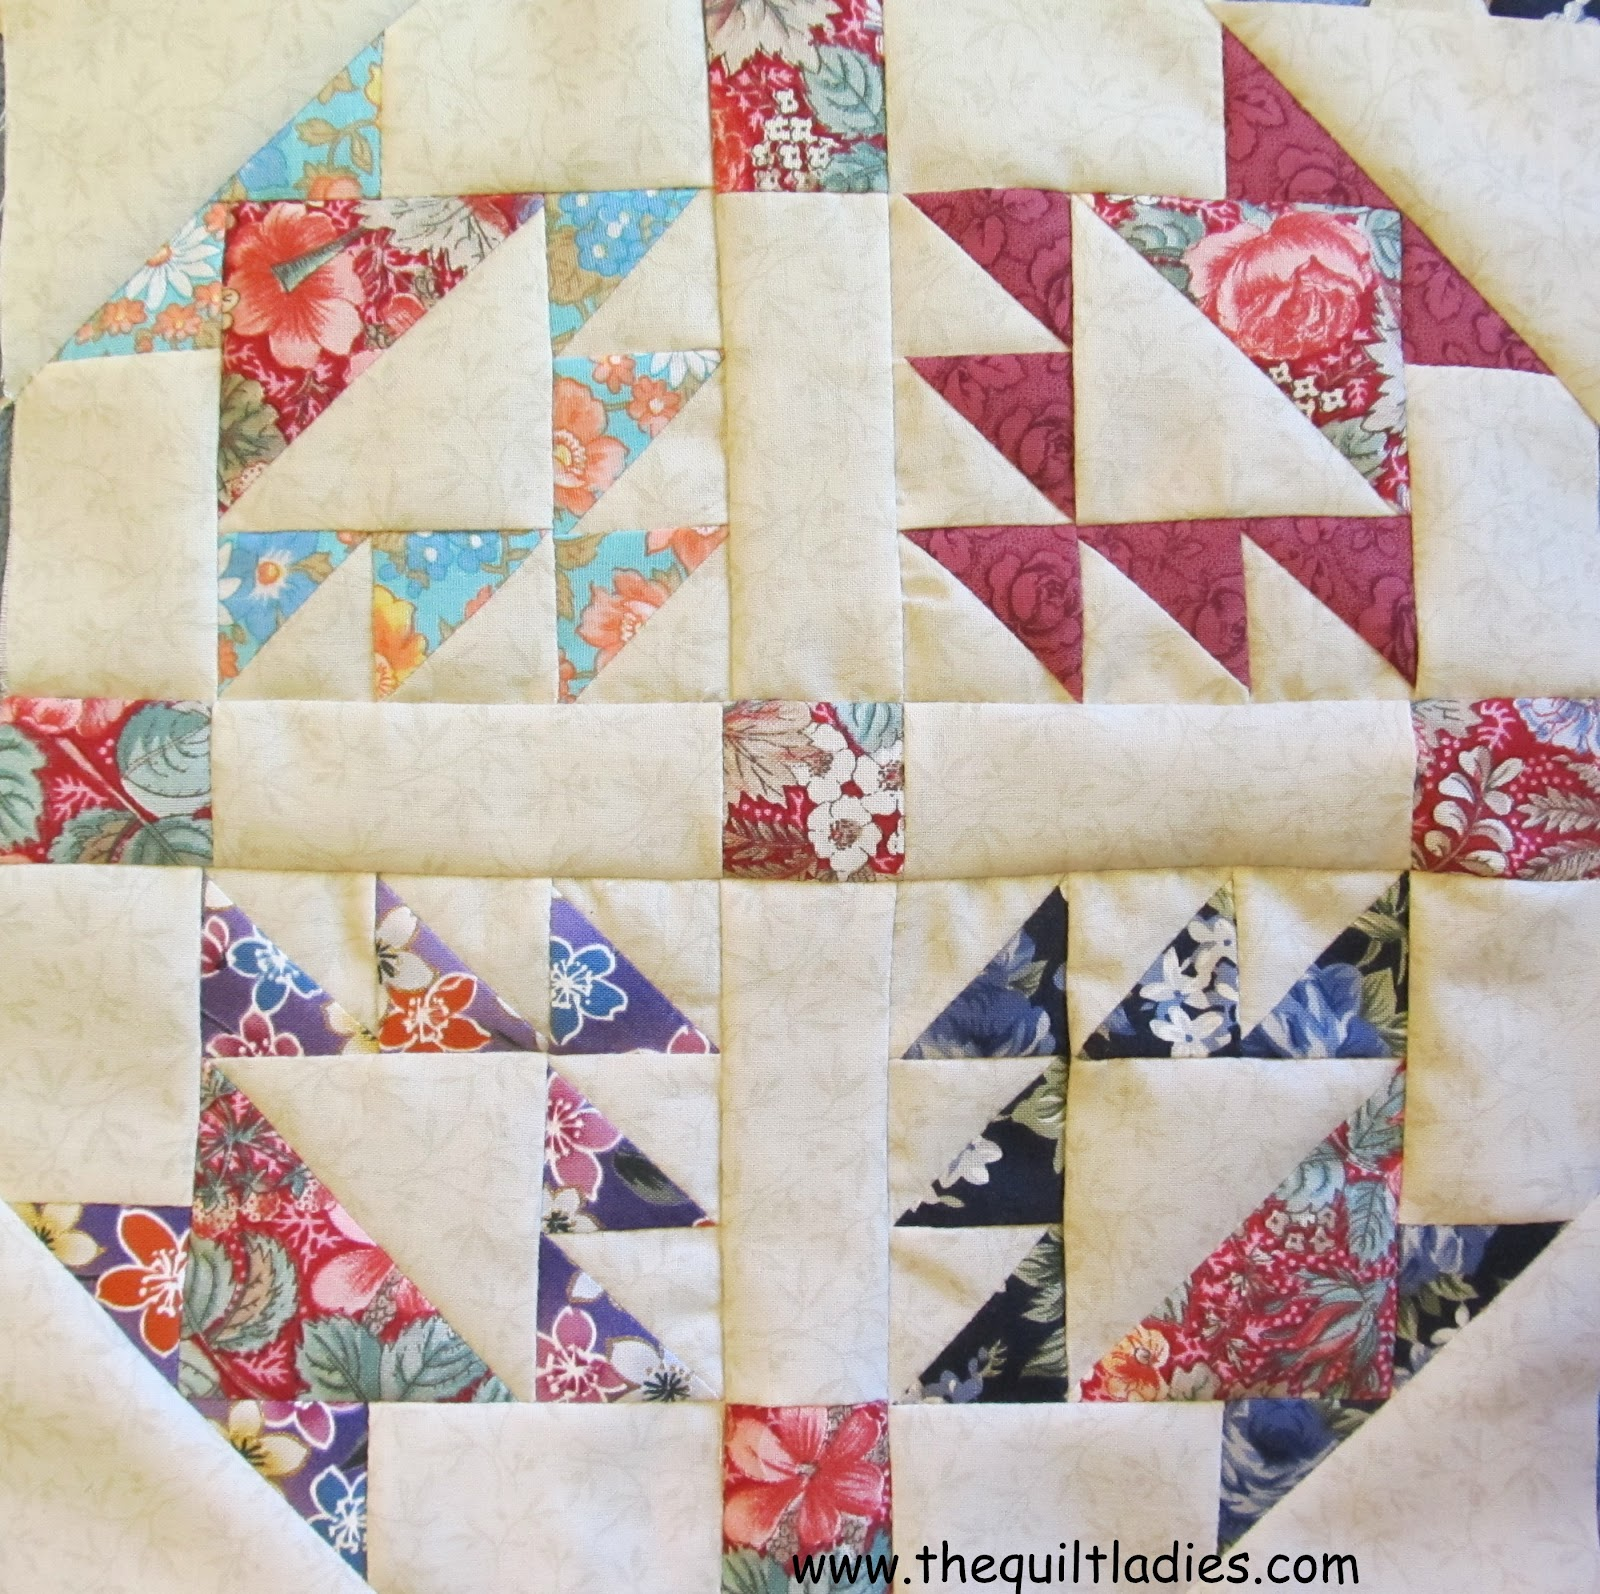 Quilting Patterns Instructions : The Quilt Ladies Book Collection: How to Quilt - TUTORIALS